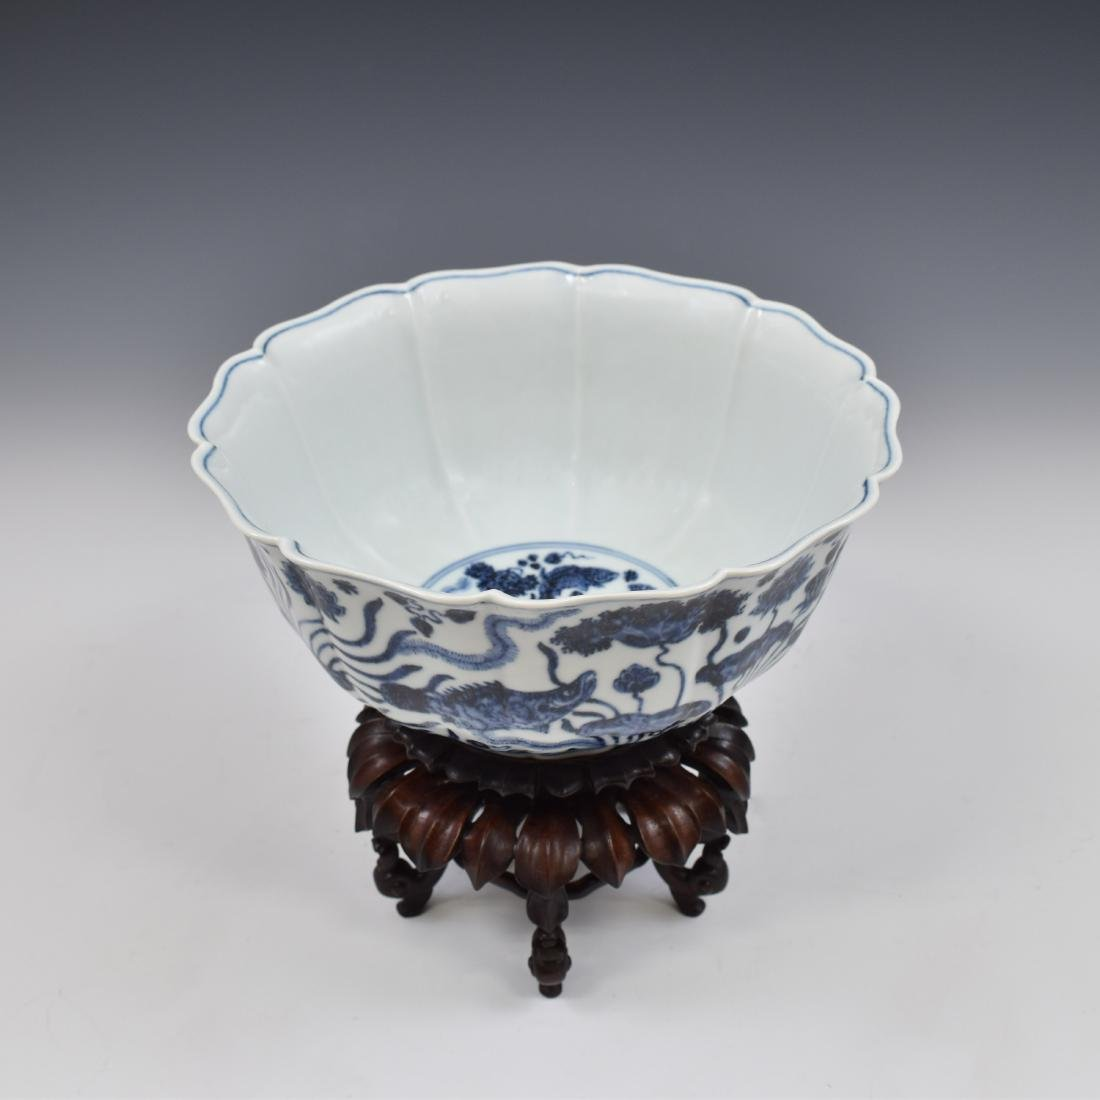 MING BLUE & WHITE CARP MOTIF BOWL ON STAND - 3